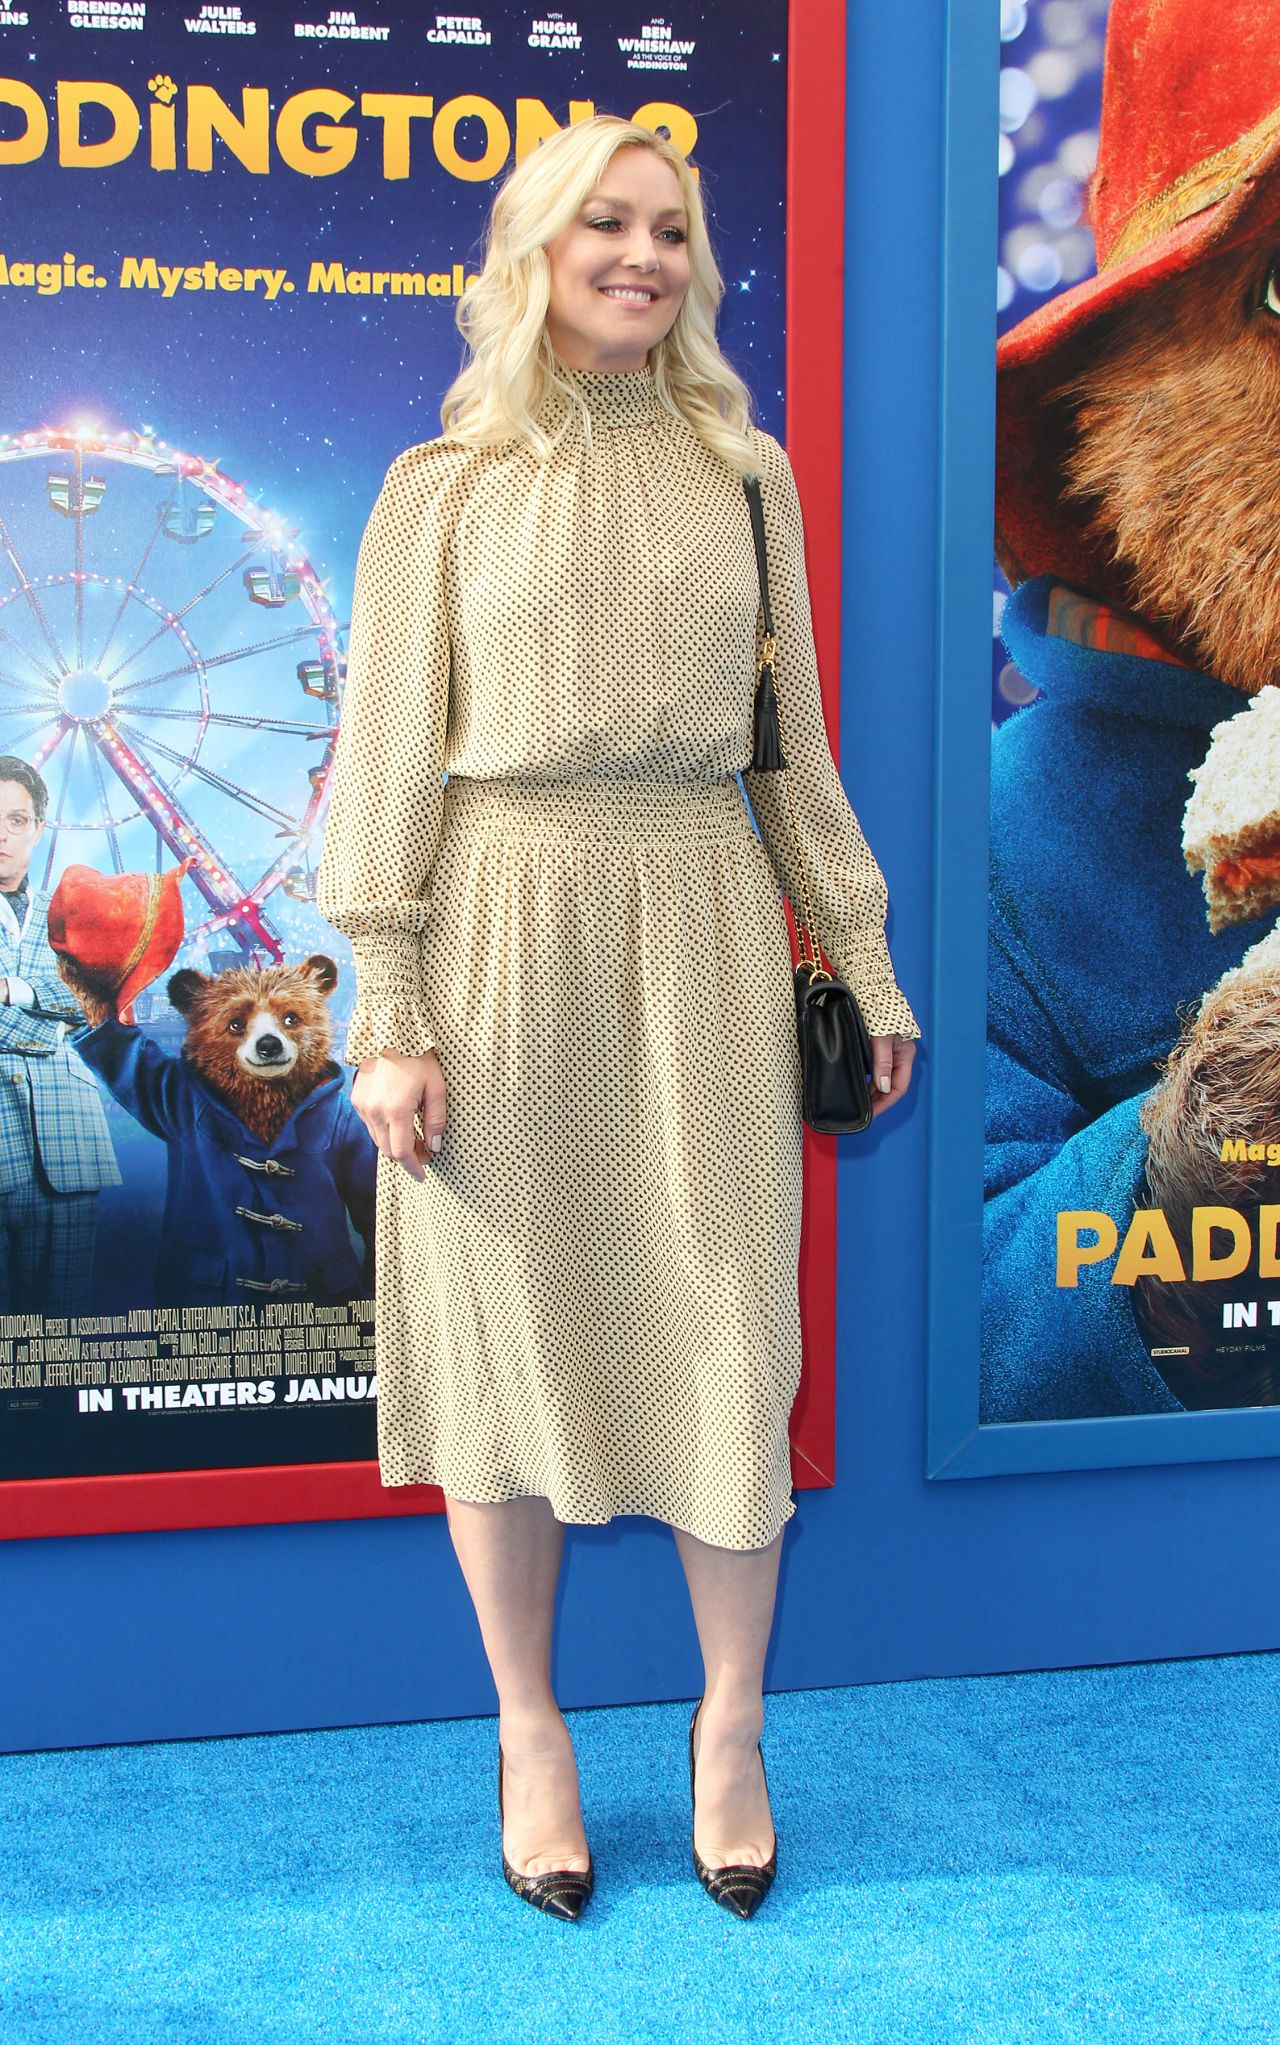 http://celebmafia.com/wp-content/uploads/2018/01/elisabeth-rohm-paddington-2-premiere-in-los-angeles-2.jpg